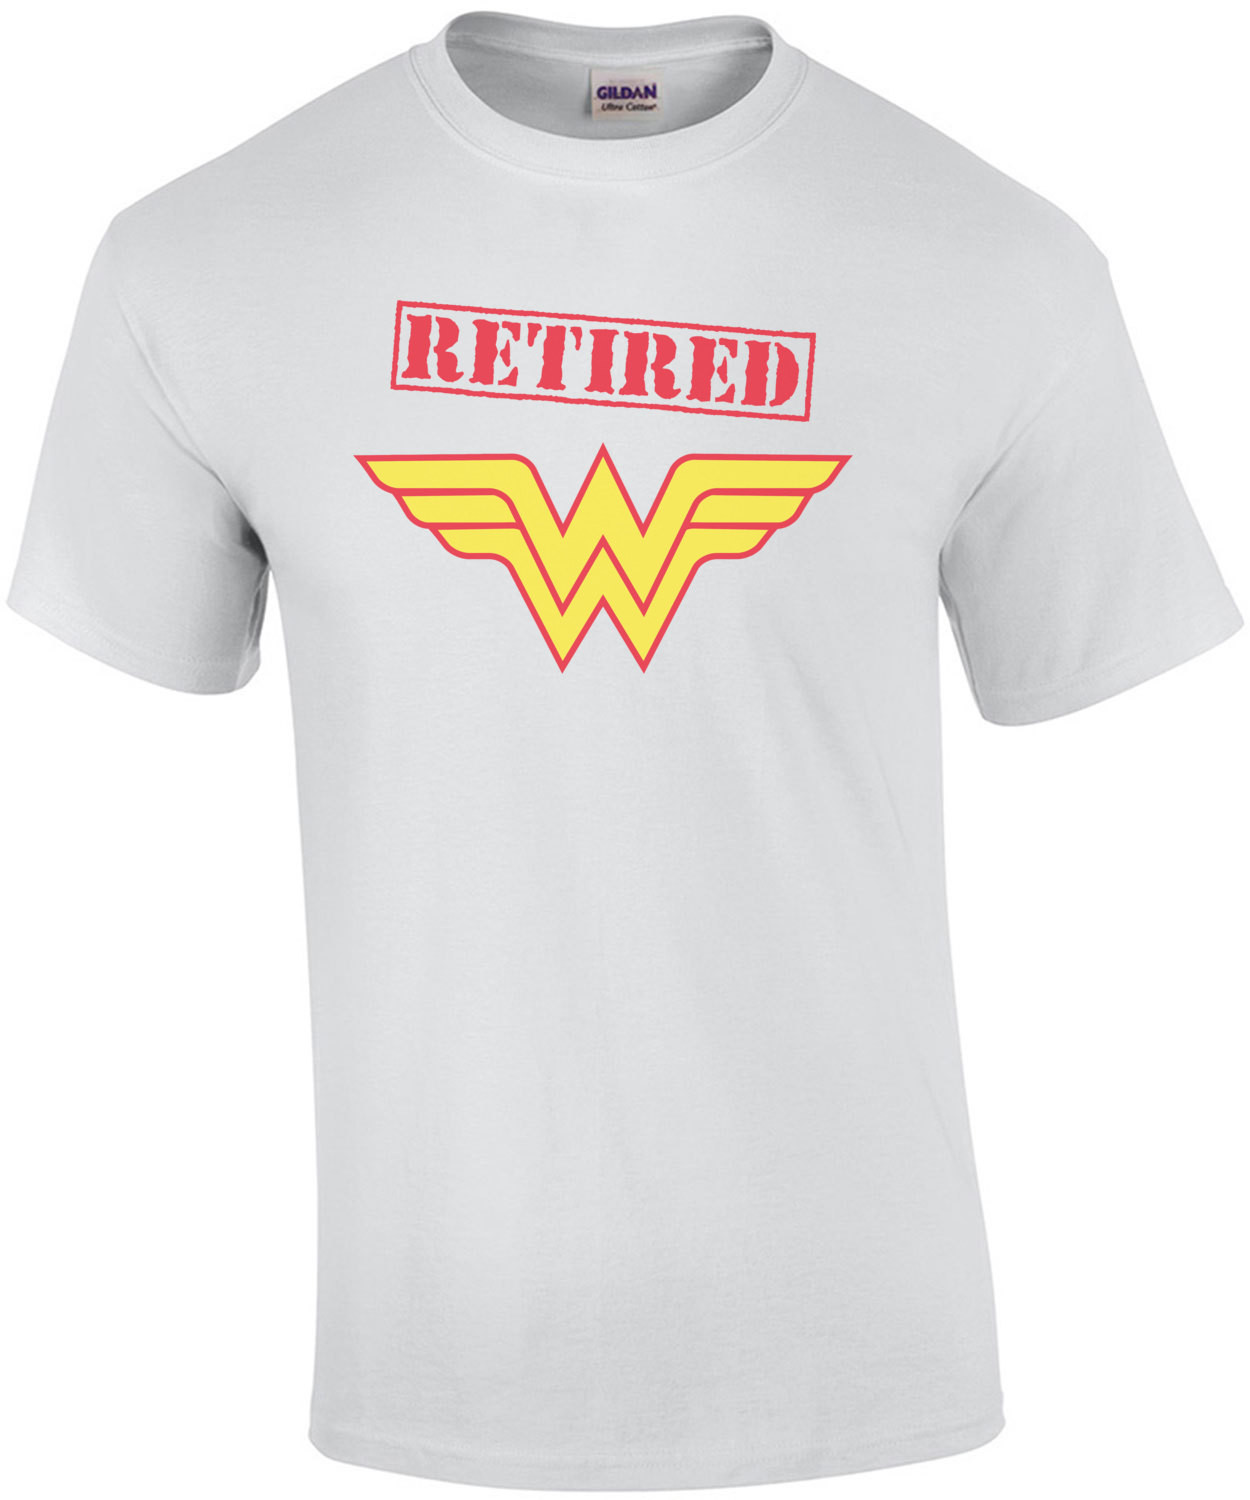 Wonder Woman Retired T-Shirt